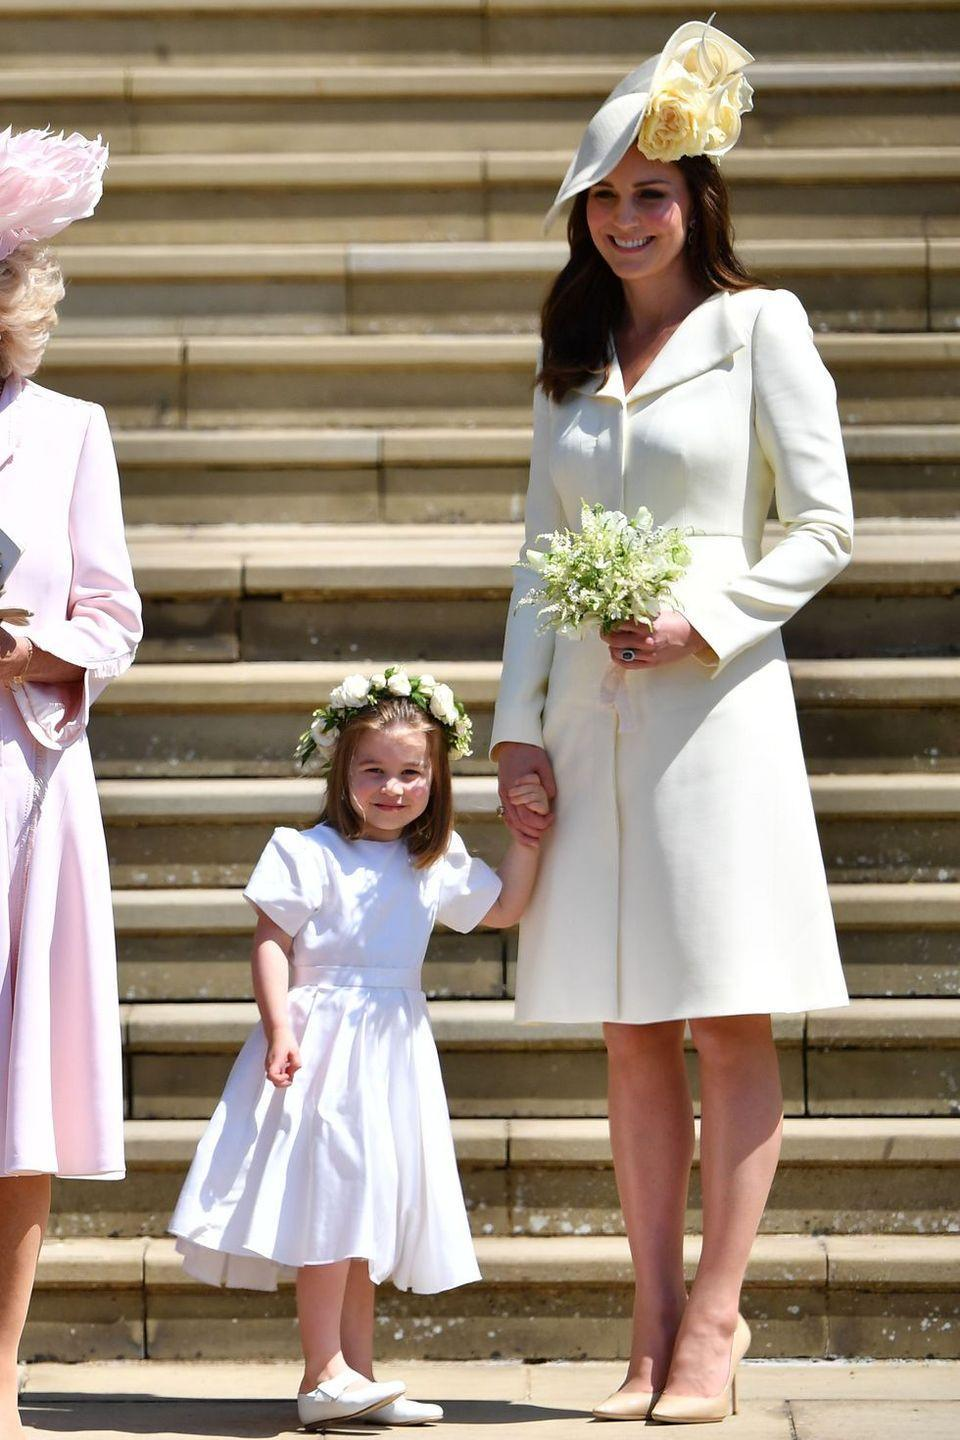 """<p>The Duchess donned a yellow Alexander McQueen coat for the royal wedding of the year—when <a href=""""https://www.harpersbazaar.com/celebrity/latest/a13945302/prince-harry-meghan-markle-royal-wedding/"""" rel=""""nofollow noopener"""" target=""""_blank"""" data-ylk=""""slk:Prince Harry wed Meghan Markle"""" class=""""link rapid-noclick-resp"""">Prince Harry wed Meghan Markle</a>. She paired it with a coordinating floral fascinator. </p>"""